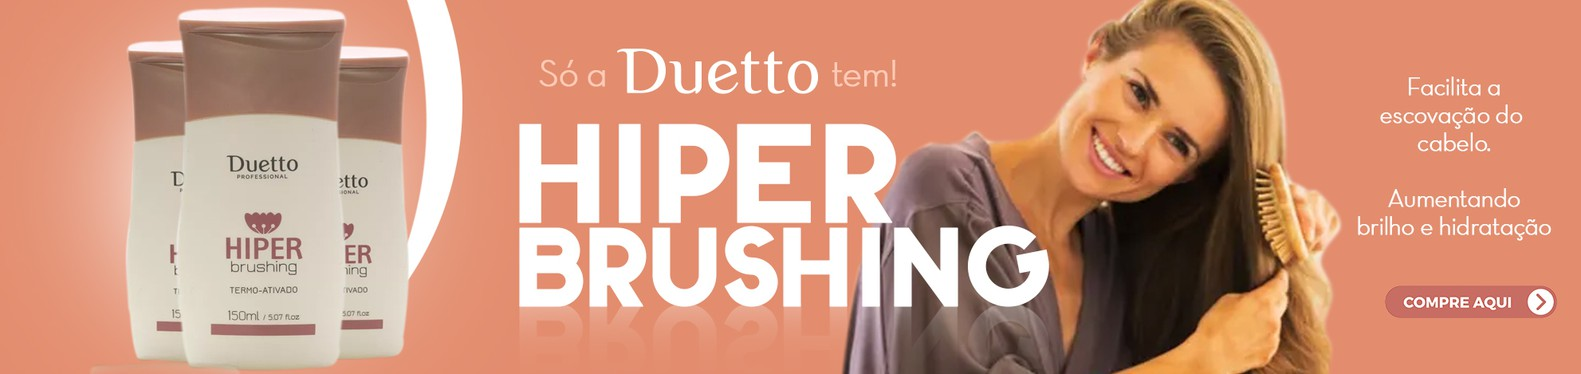 Hiper Brushing Duetto 150ml